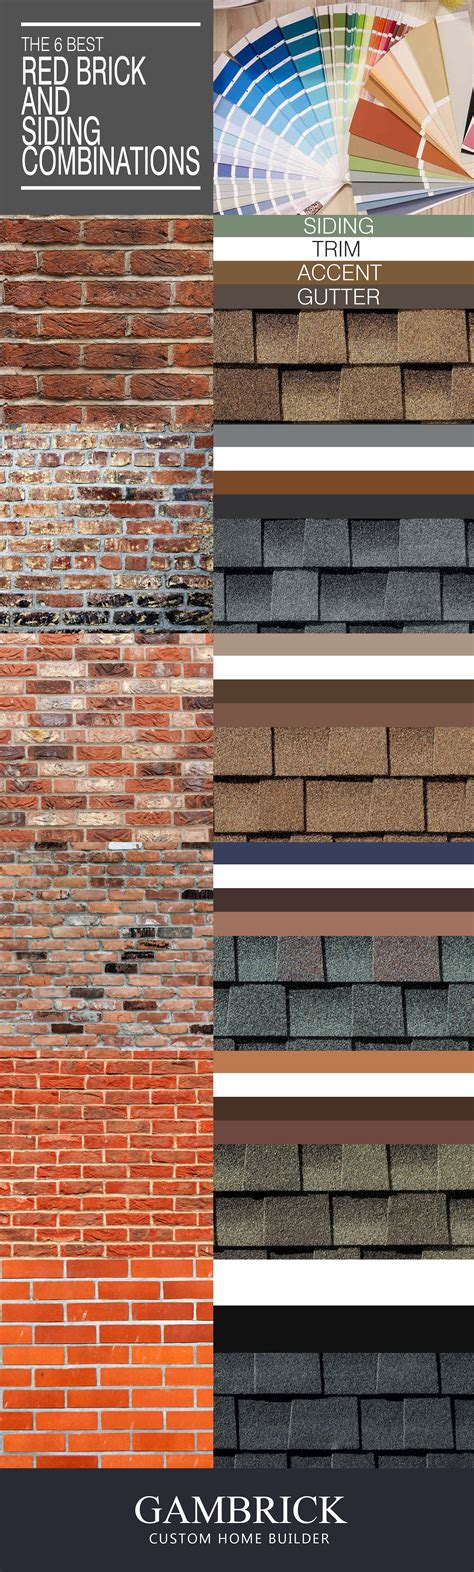 what color siding goes with red brick stunning color